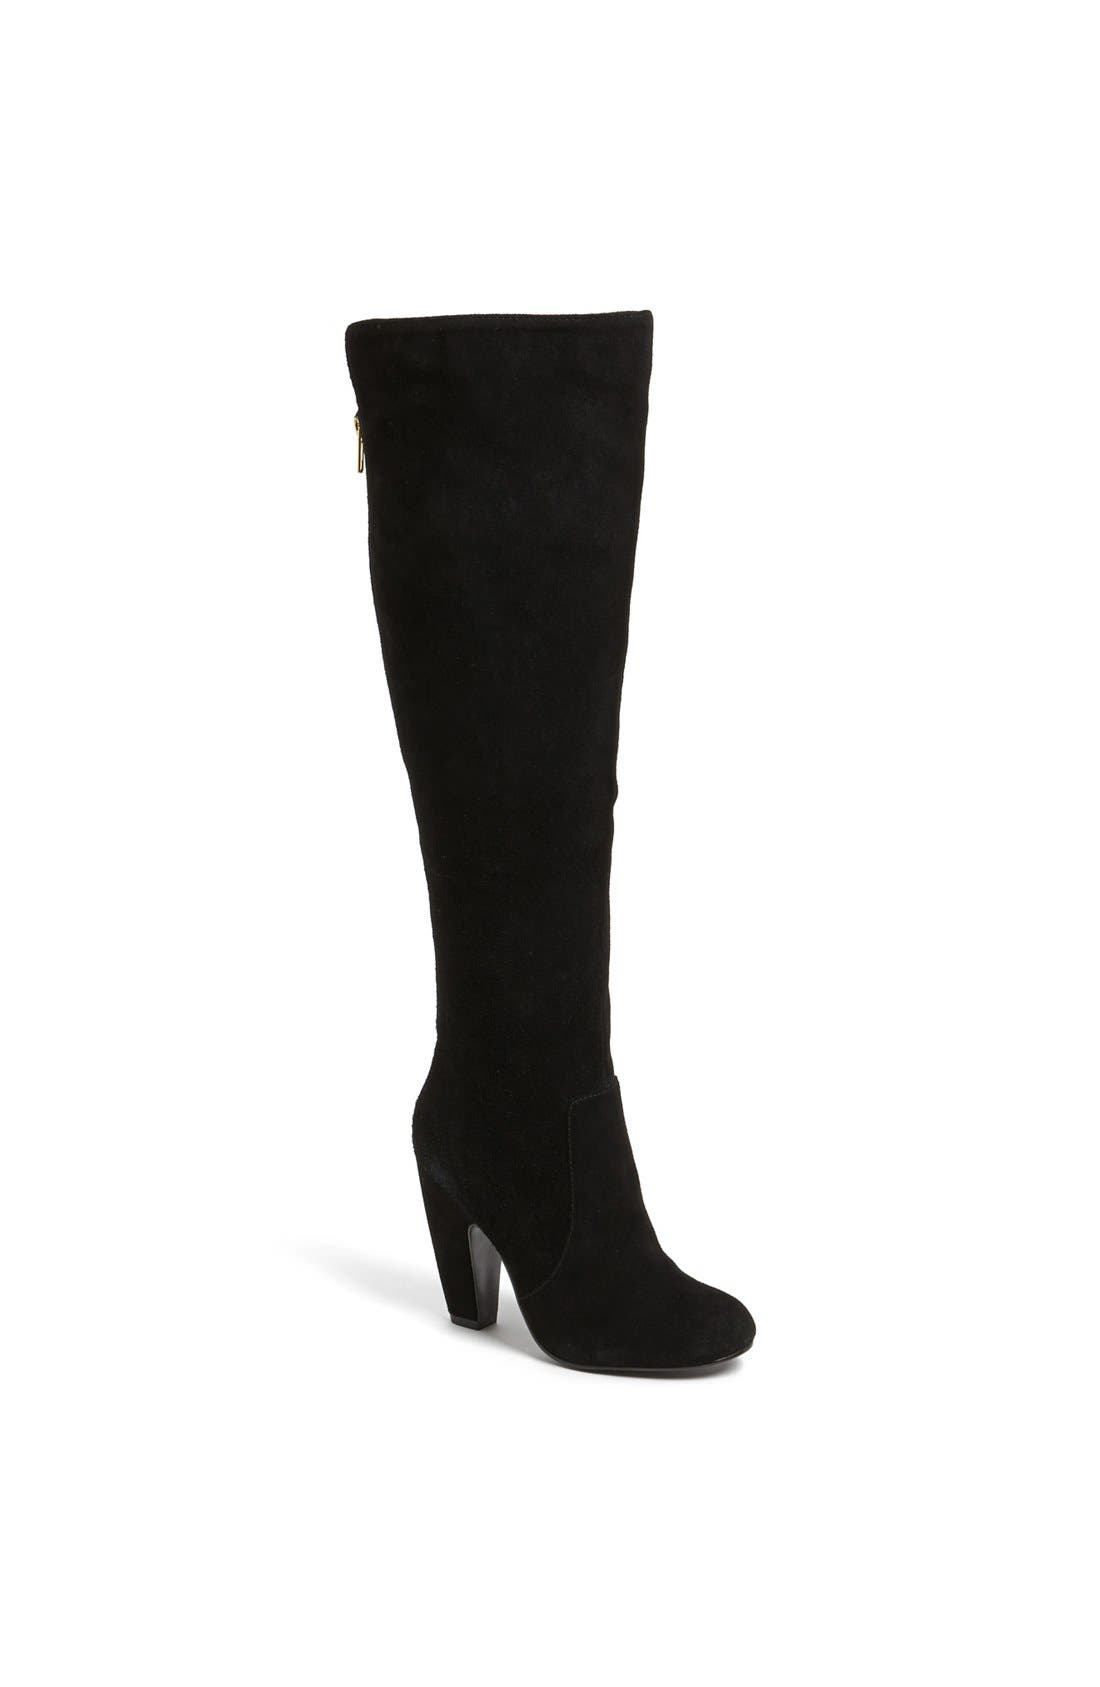 Alternate Image 1 Selected - Steve Madden 'Priscila' Knee High Suede Boot